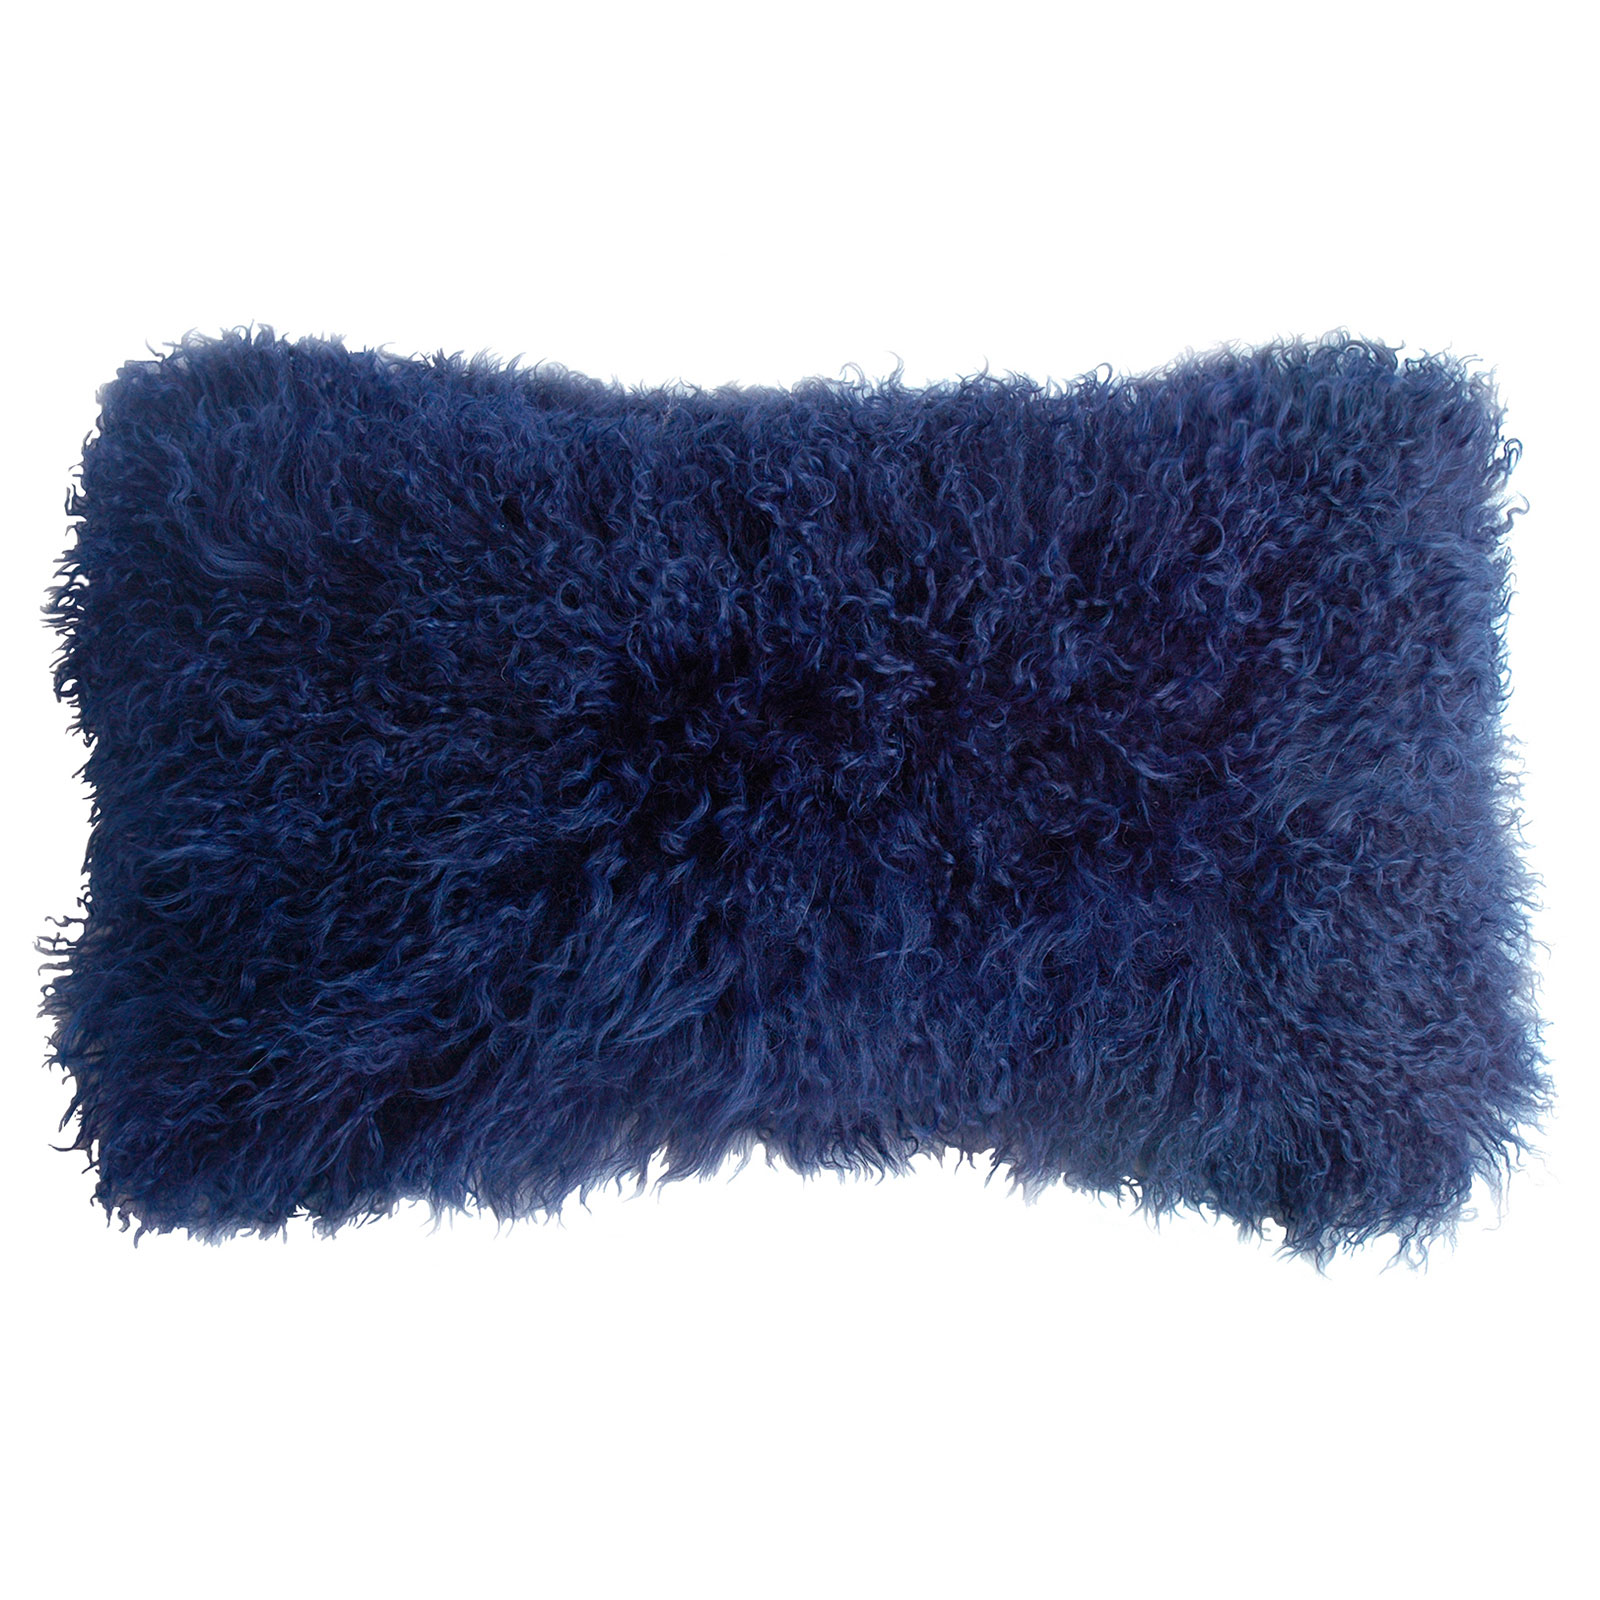 Shansi Royal Blue Tibetan Long Wool Lumbar Pillow - 11x22